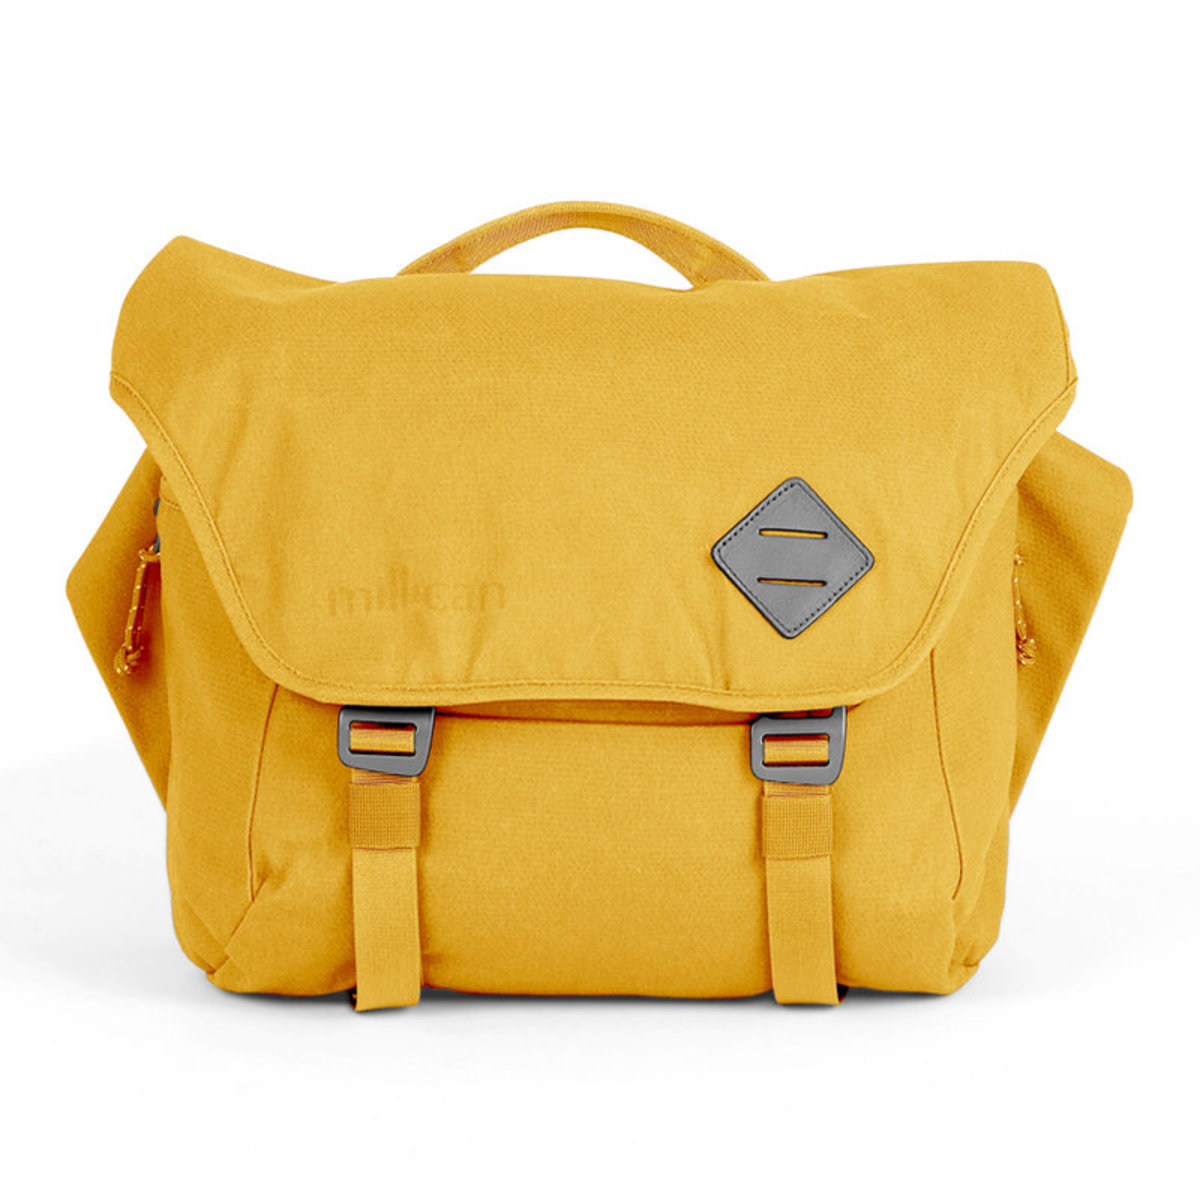 斜揹袋 - Nick Messenger Bag (13L)